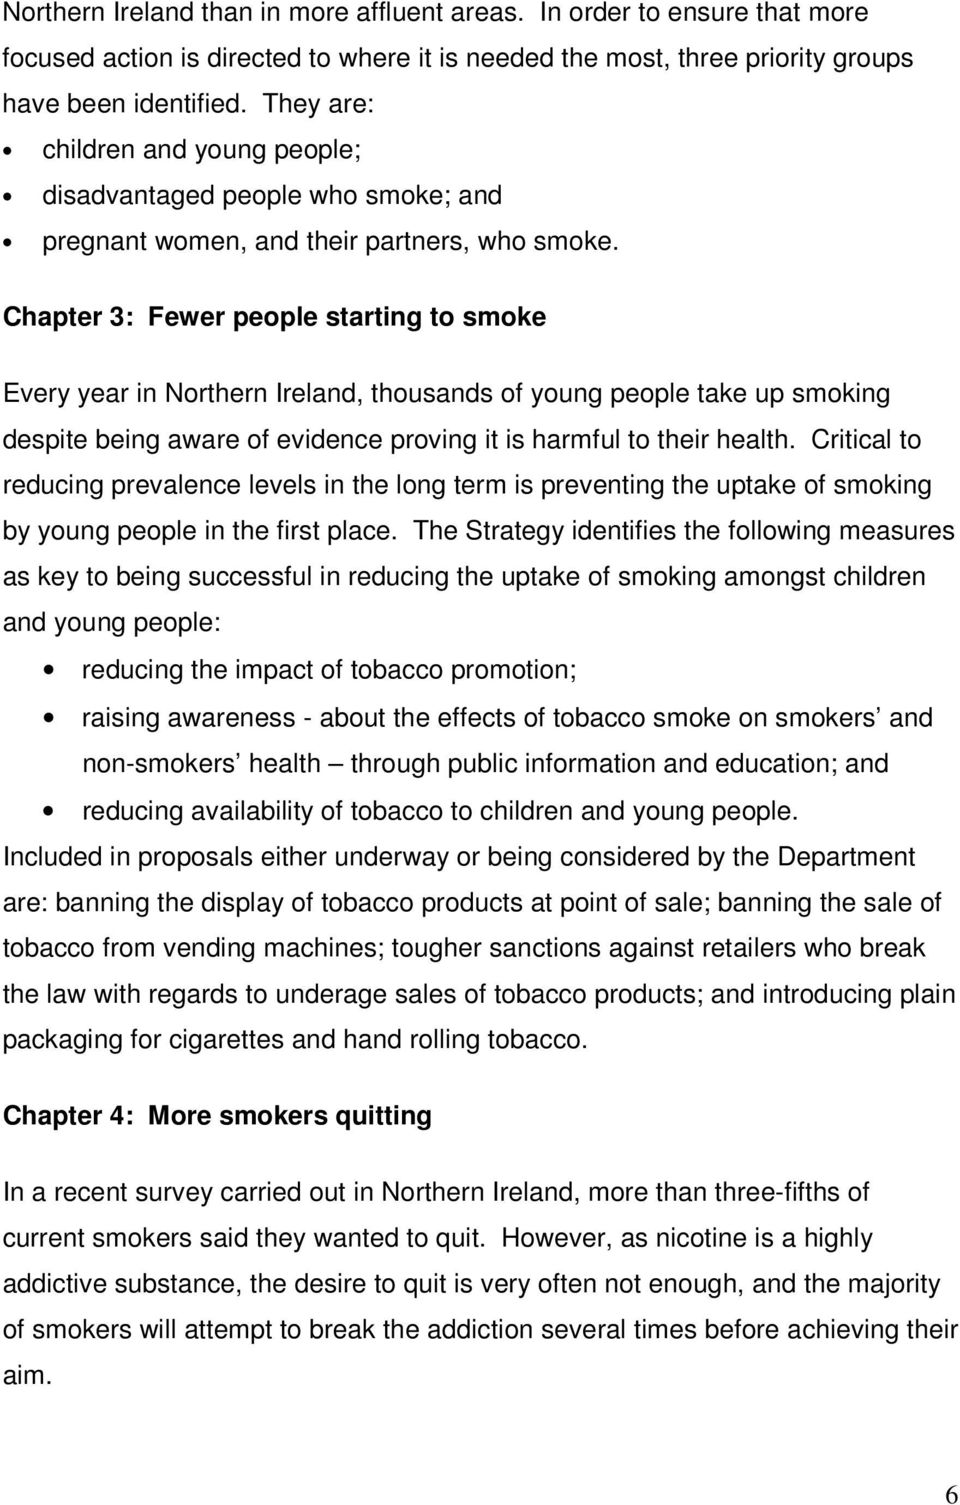 Chapter 3: Fewer people starting to smoke Every year in Northern Ireland, thousands of young people take up smoking despite being aware of evidence proving it is harmful to their health.